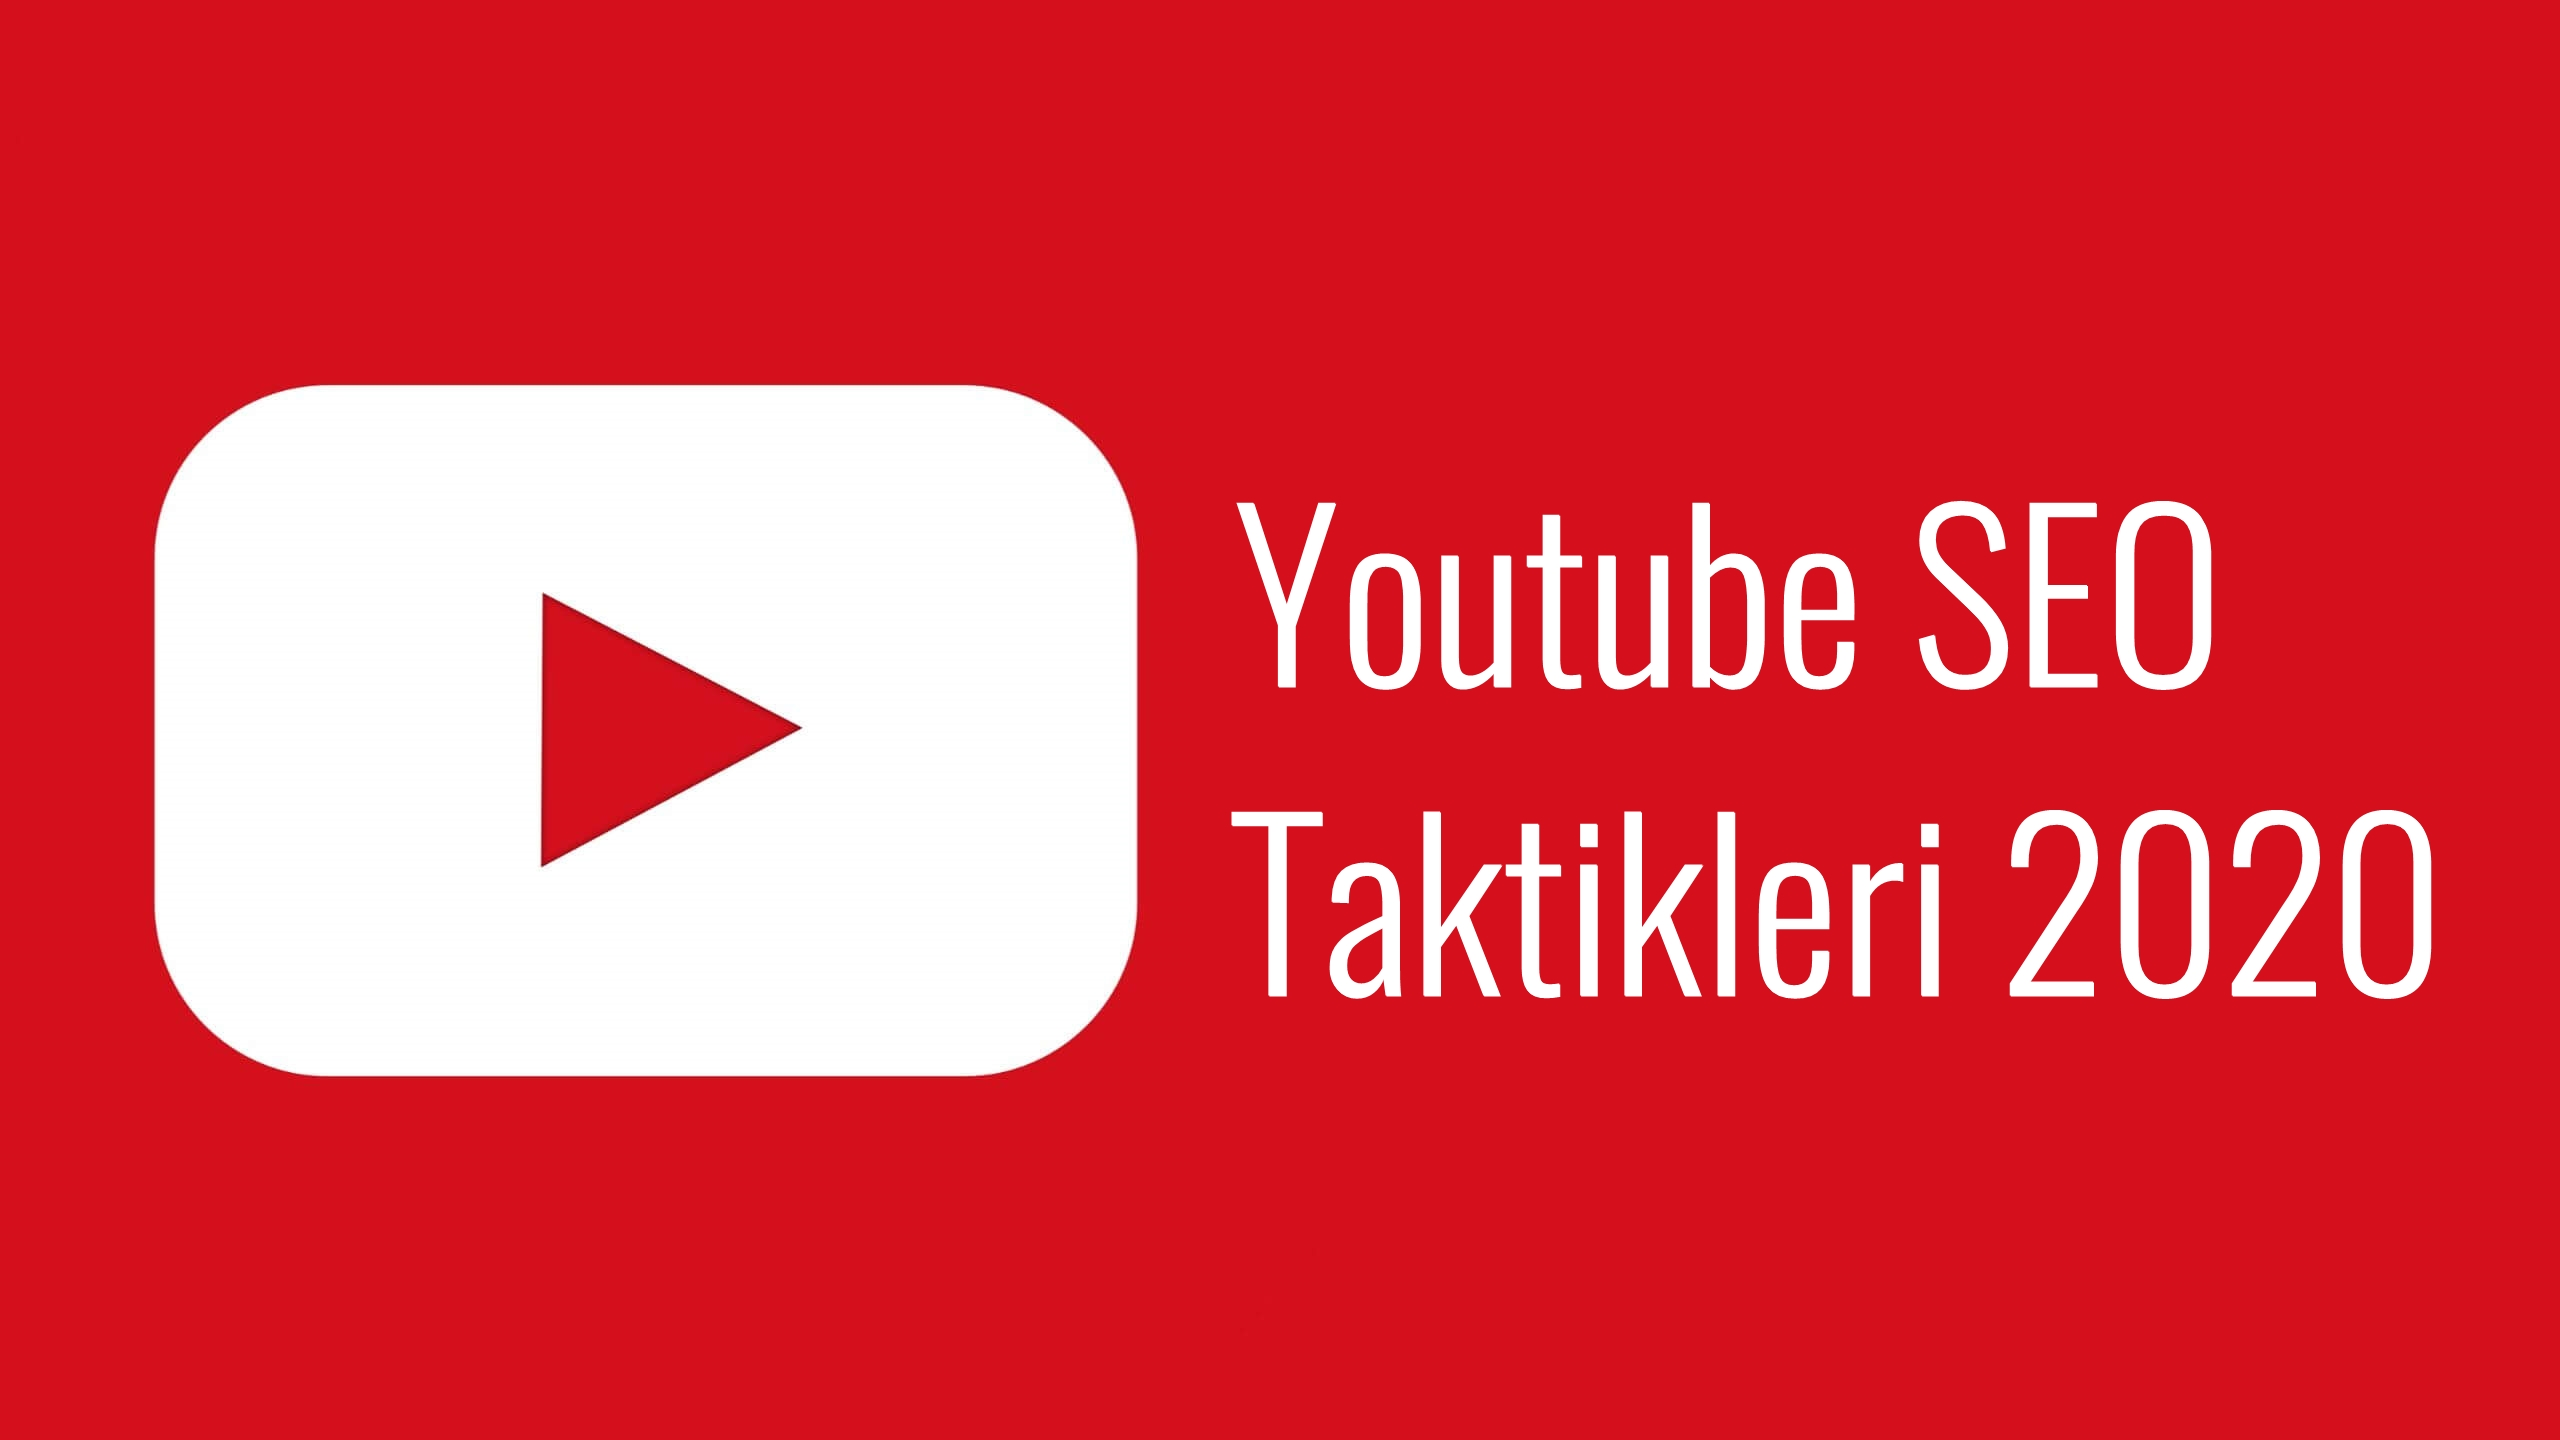 Youtube SEO Taktikleri 2020, Youtube SEO Teknikleri